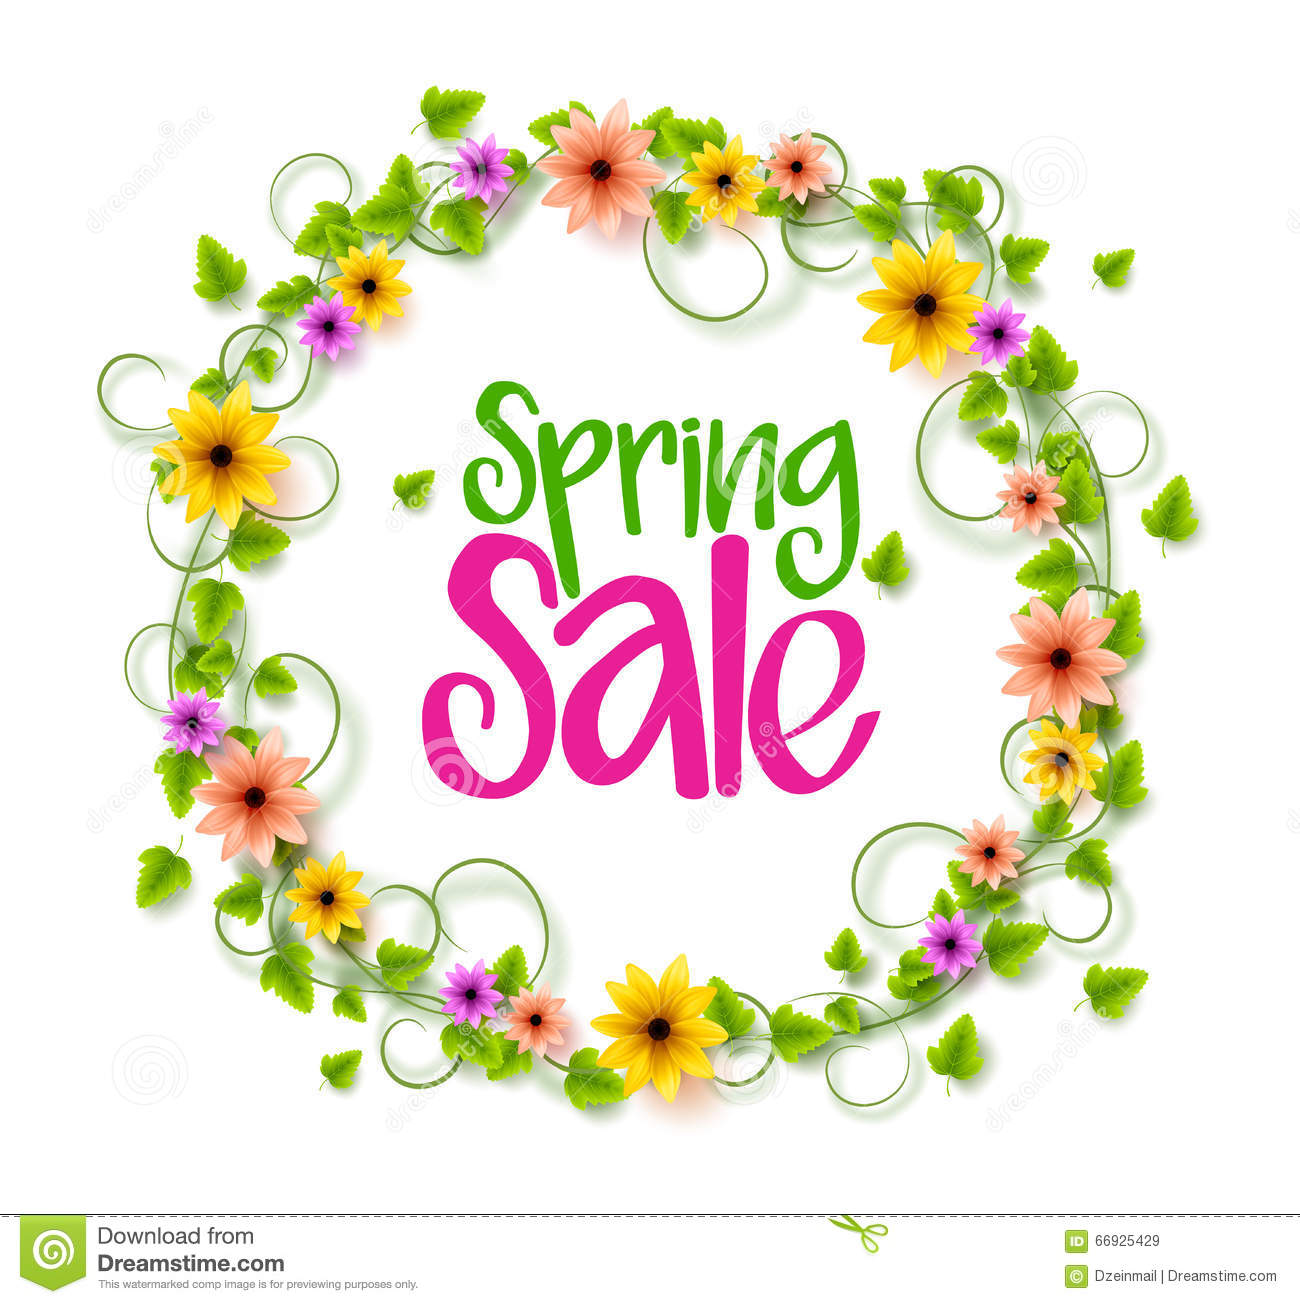 Spring sale wreath of colorful realistic vector flowers and vines spring sale wreath of colorful realistic vector flowers and vines mightylinksfo